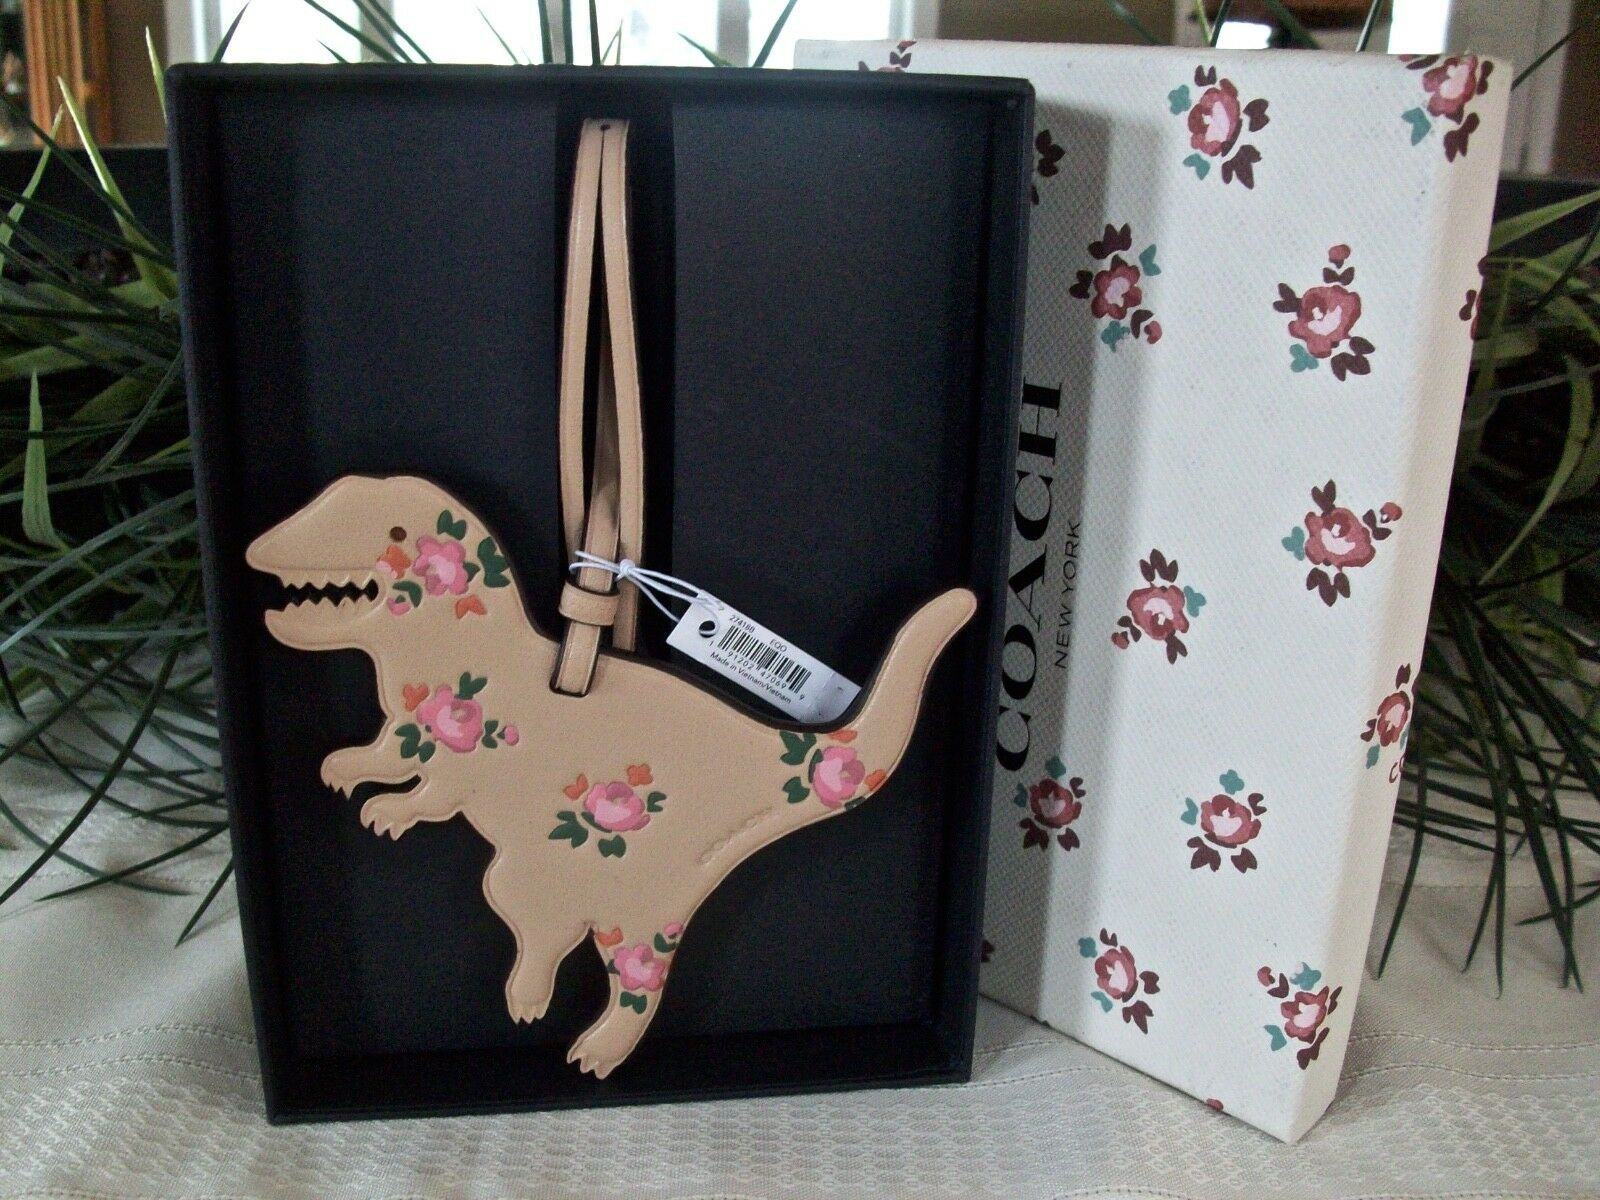 Coach Boxed Leather Printed Floral Rexy Dinosaur Charm Ornament 27418 Beechwood